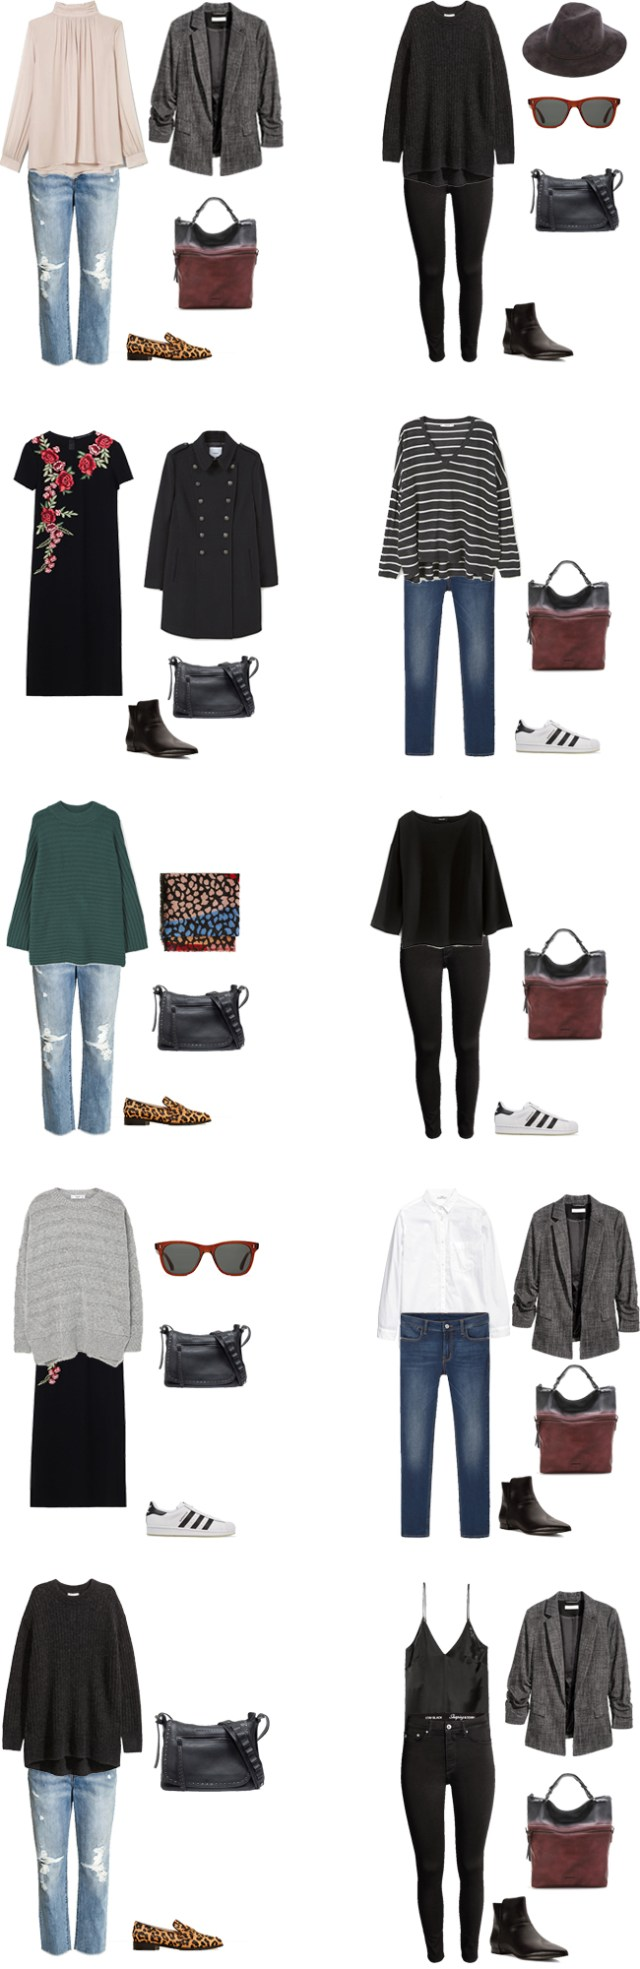 What to Wear in London England Packing Light Outfit Options 1-10 #travellight #packinglight #packinglist #traveltips #travel